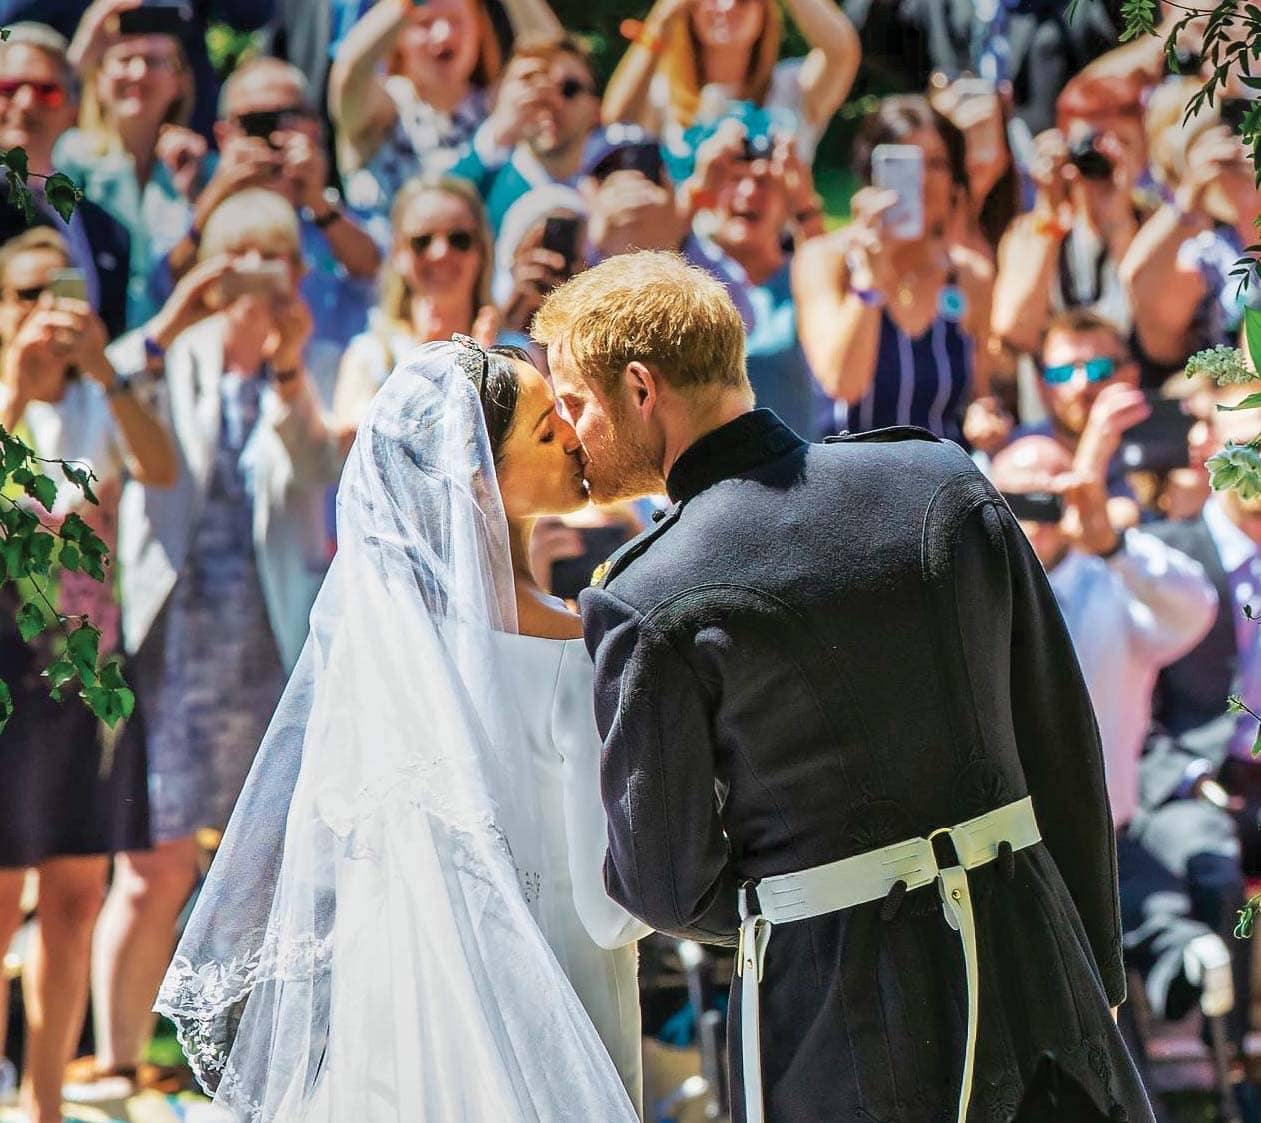 Celebrating Their First Year As A Married Couple The Duke And Duchess Of Sussex Share Never-Before-Seen Photos Of Their Big Day